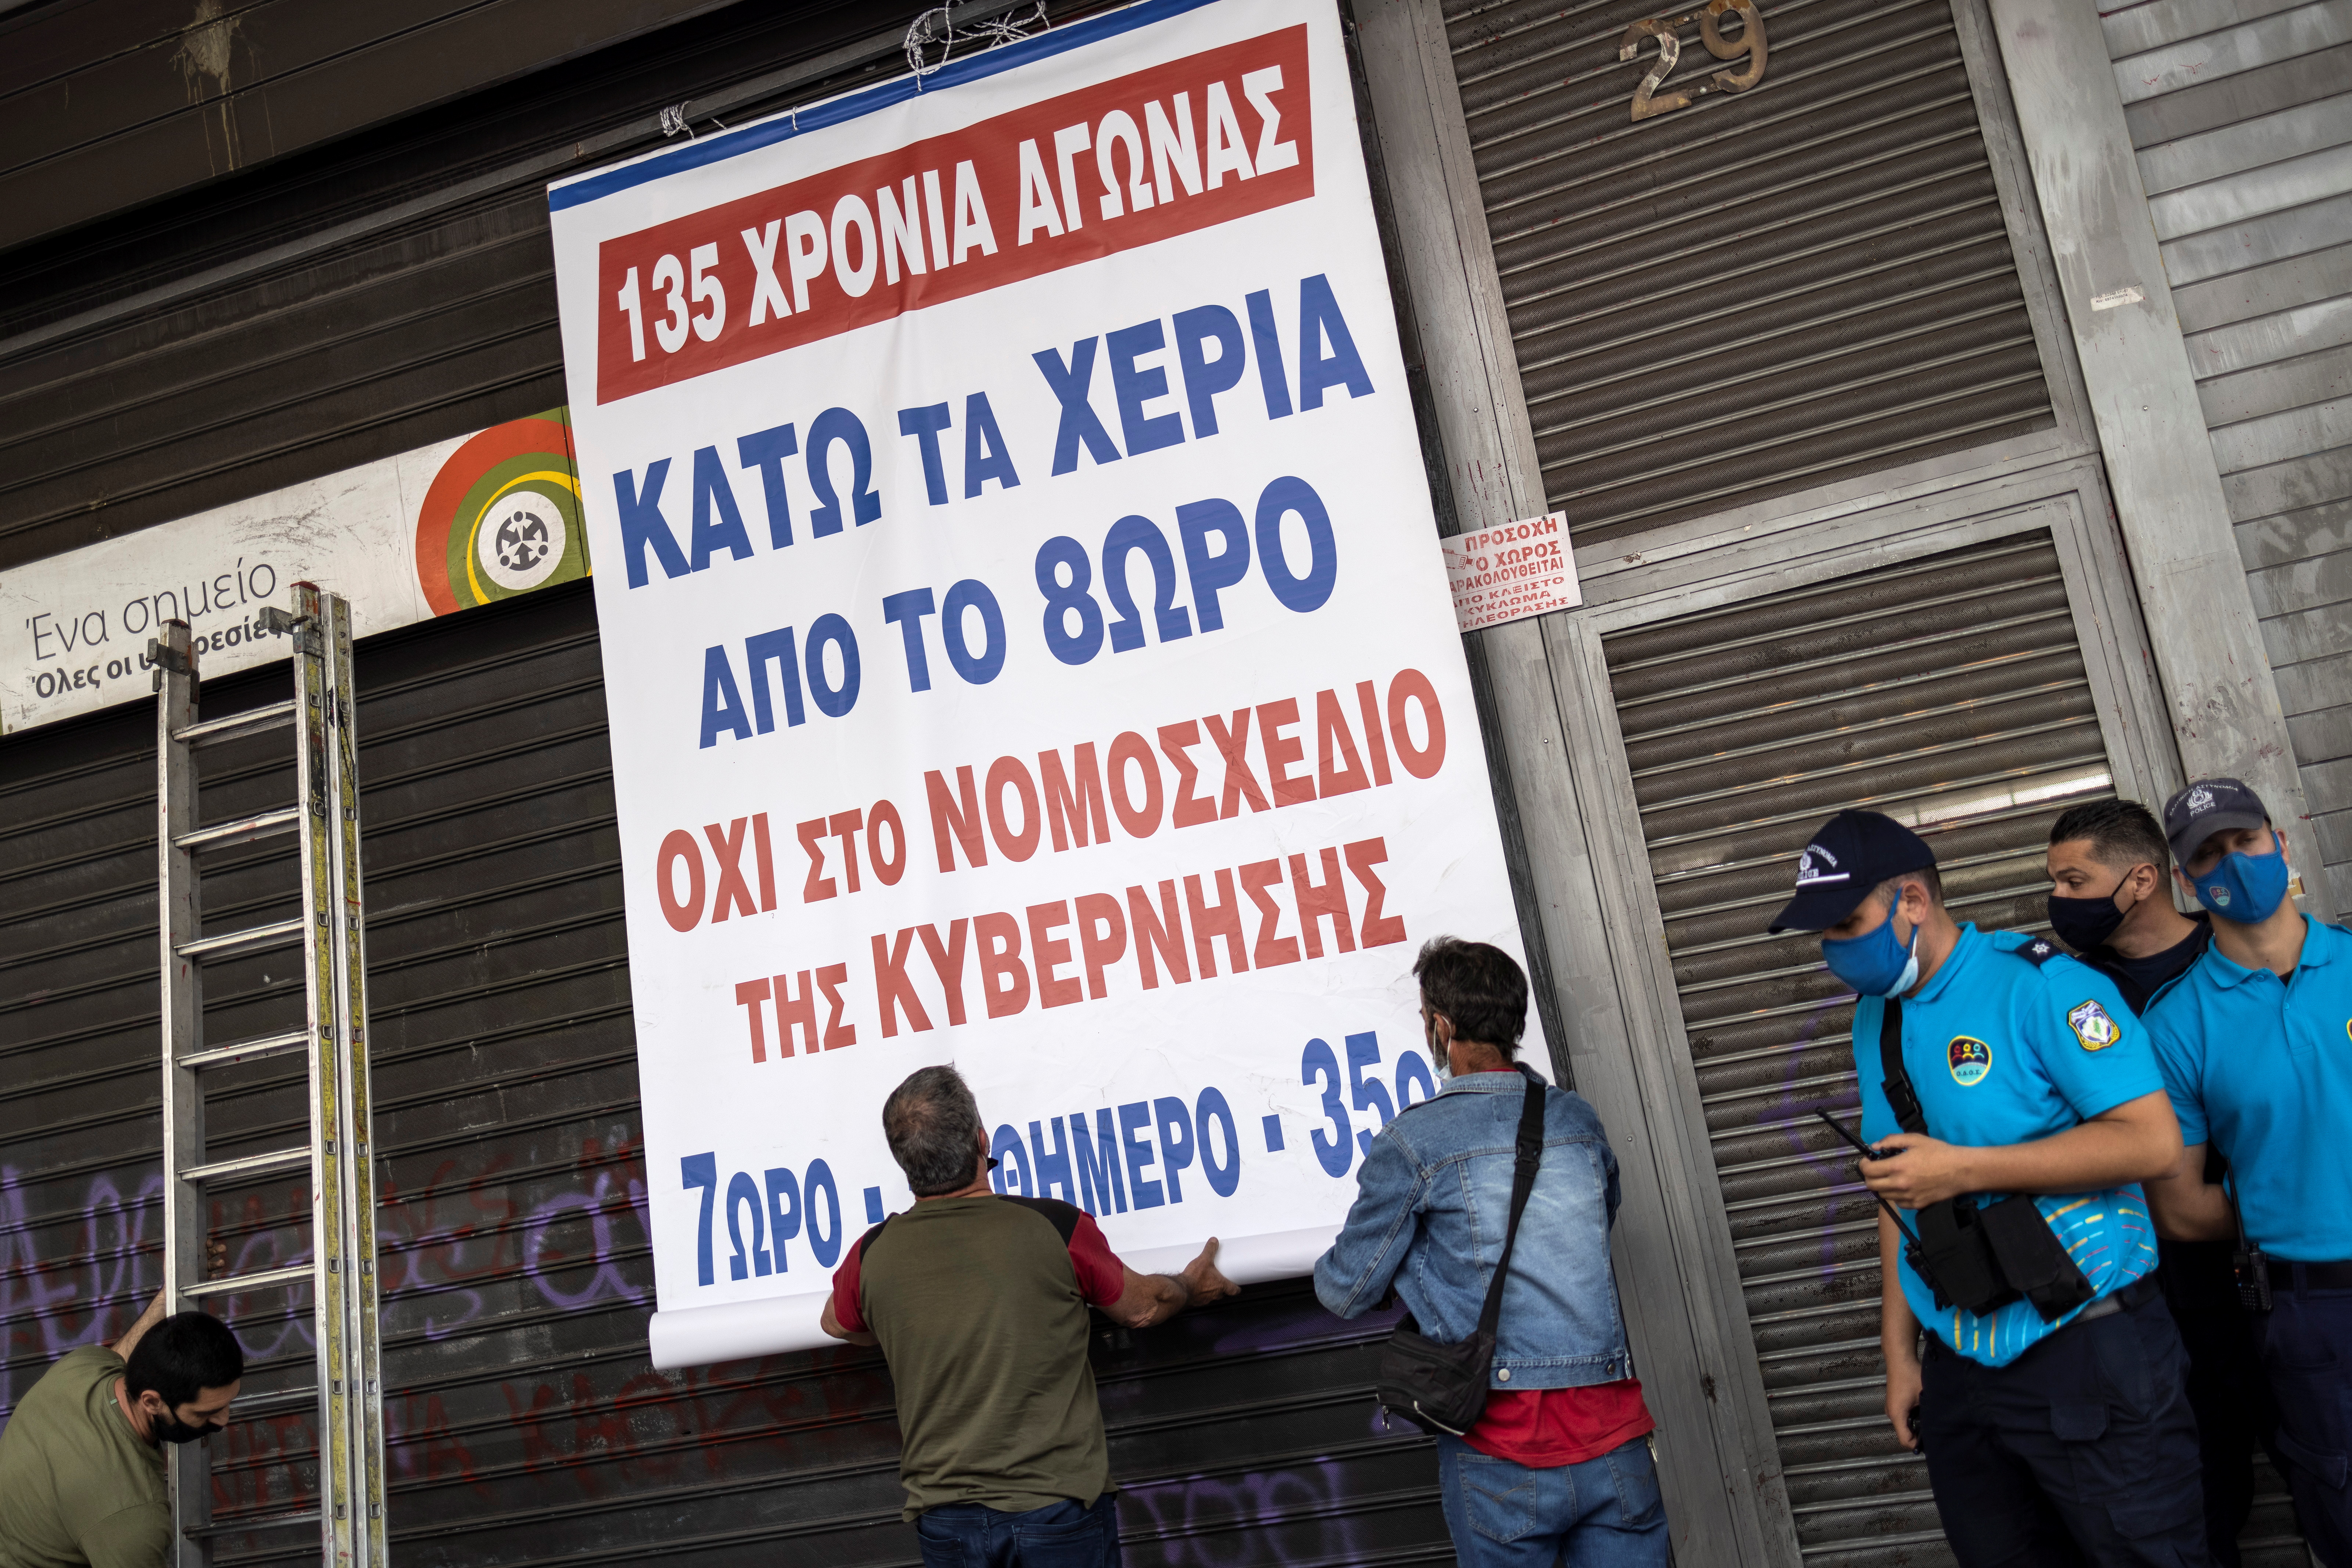 Members of the communist-affiliated trade union PAME hang a banner during a demonstration outside the Labour Ministry against a planned labour bill in Athens, Greece, May 12, 2021. The banner reads